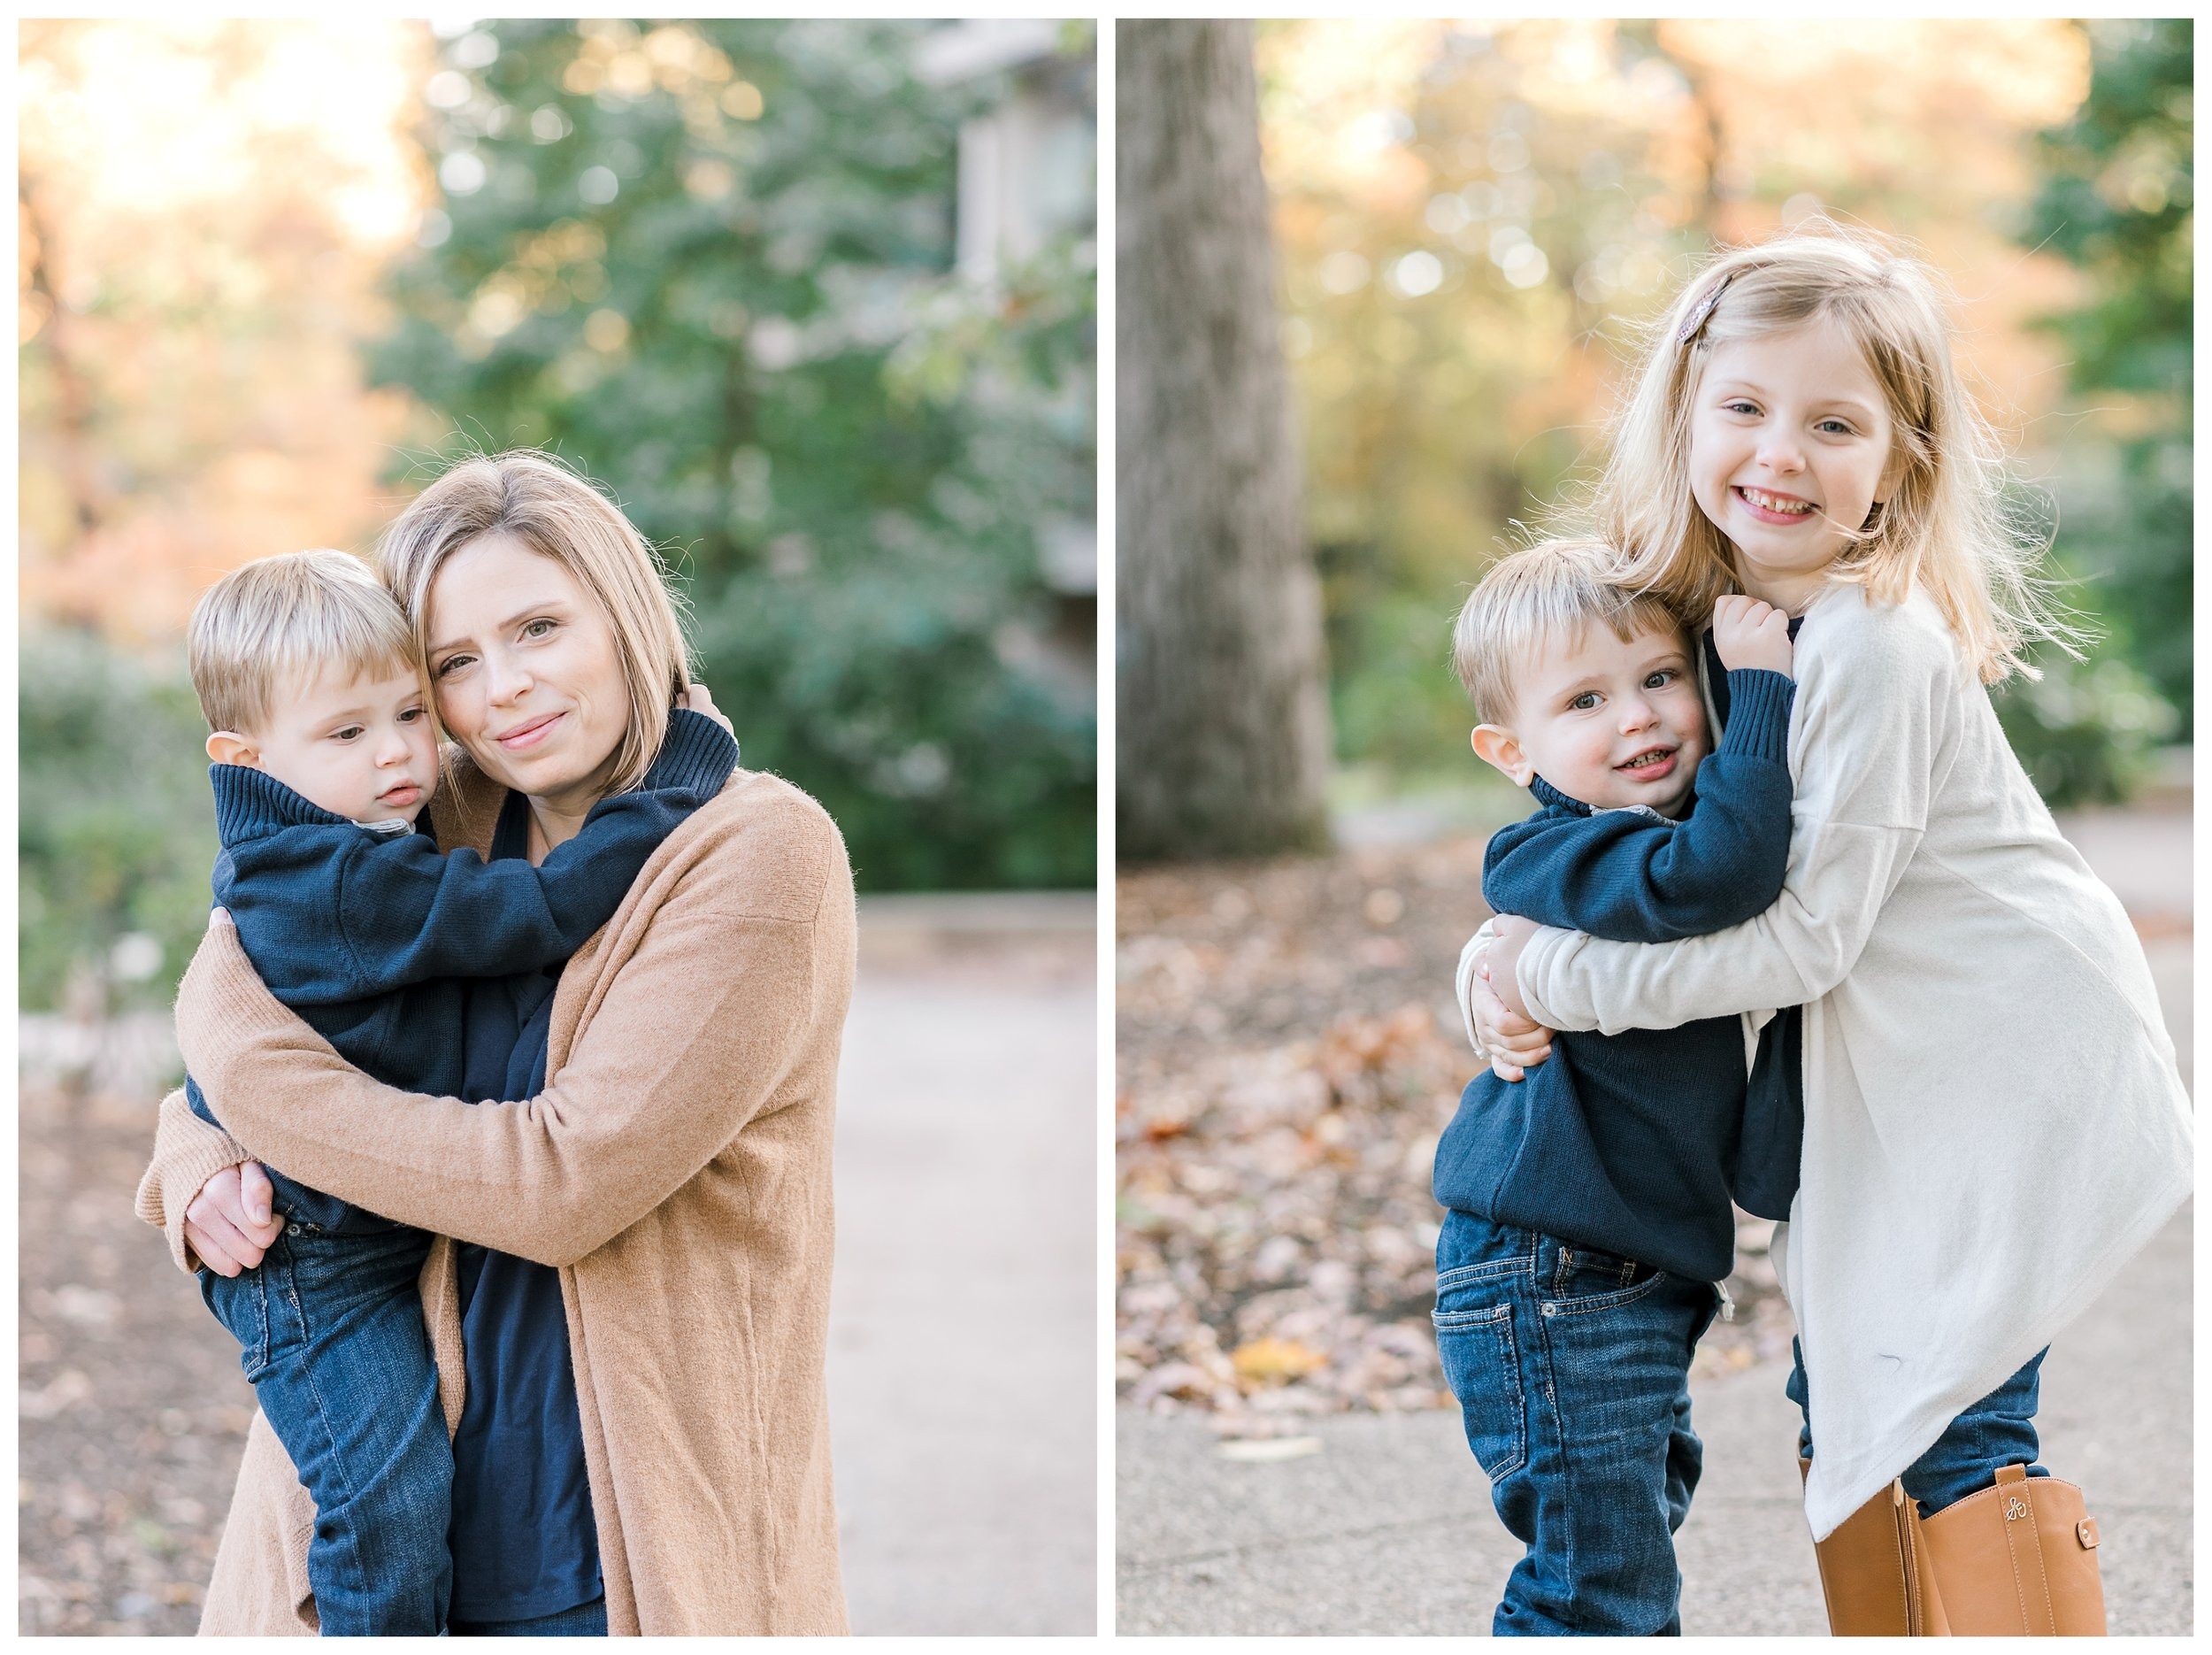 wellesley_college_fall_family_photos_erica_pezente_photography (4).jpg